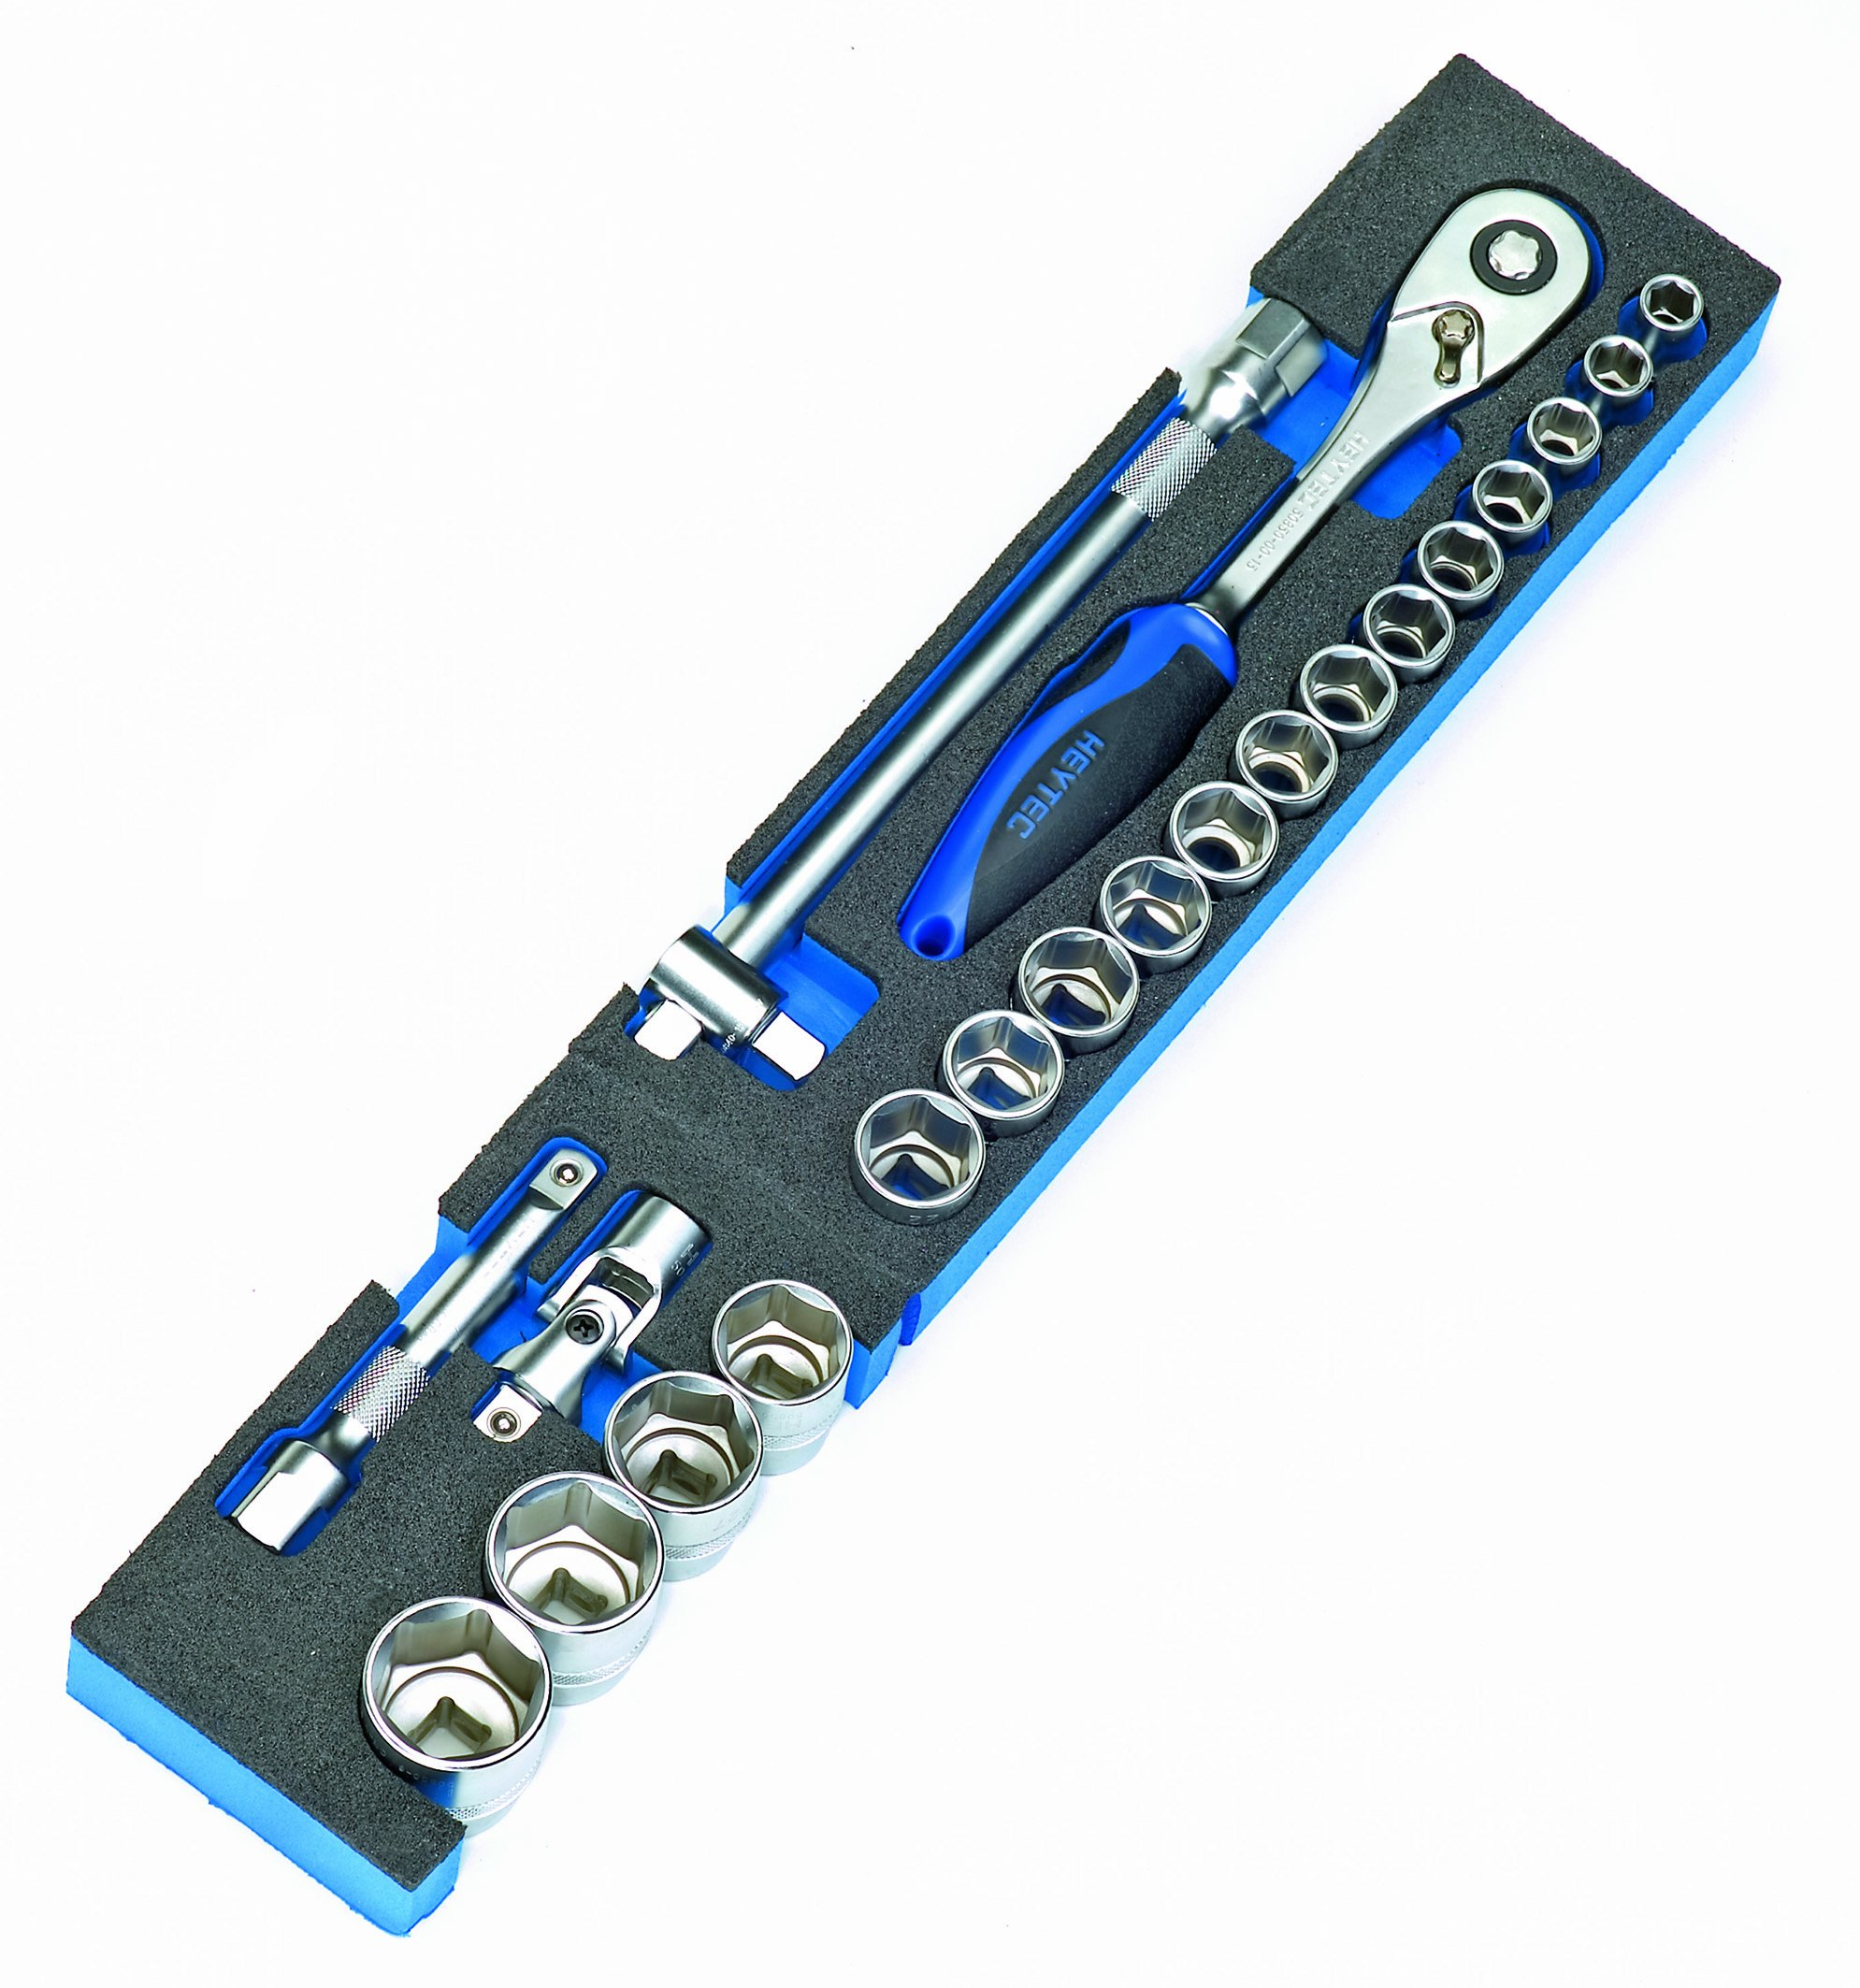 Heytec Heyco 50829-30 50829003083 Tool Box Module For Operating Tools 1/2 Inch 21-Piece Set